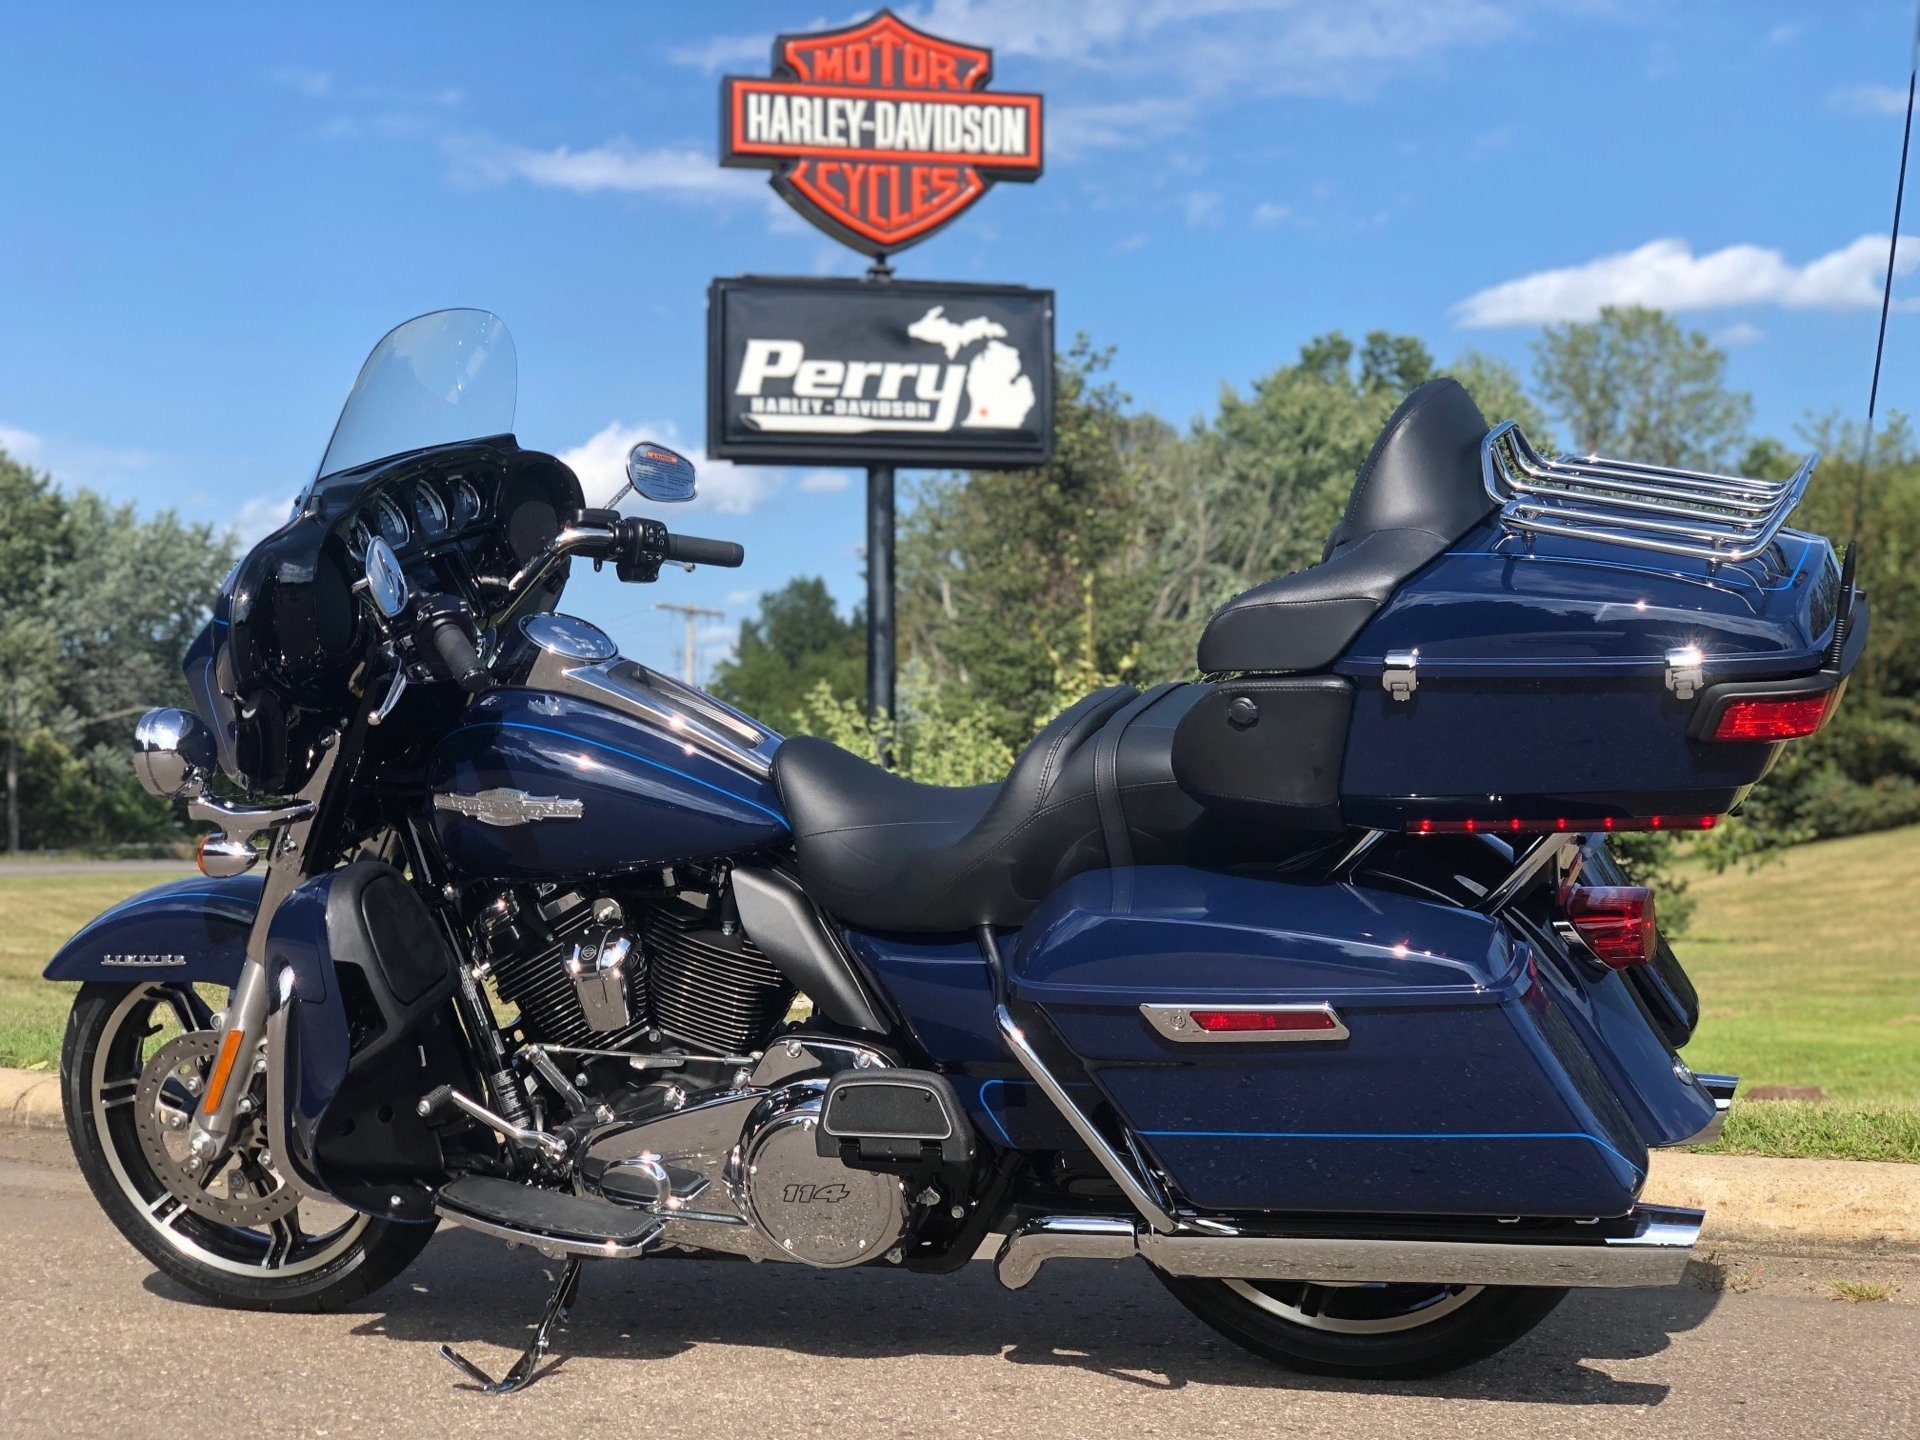 2020 Harley-Davidson Electra Glide Ultra Limited in Portage, Michigan - Photo 1